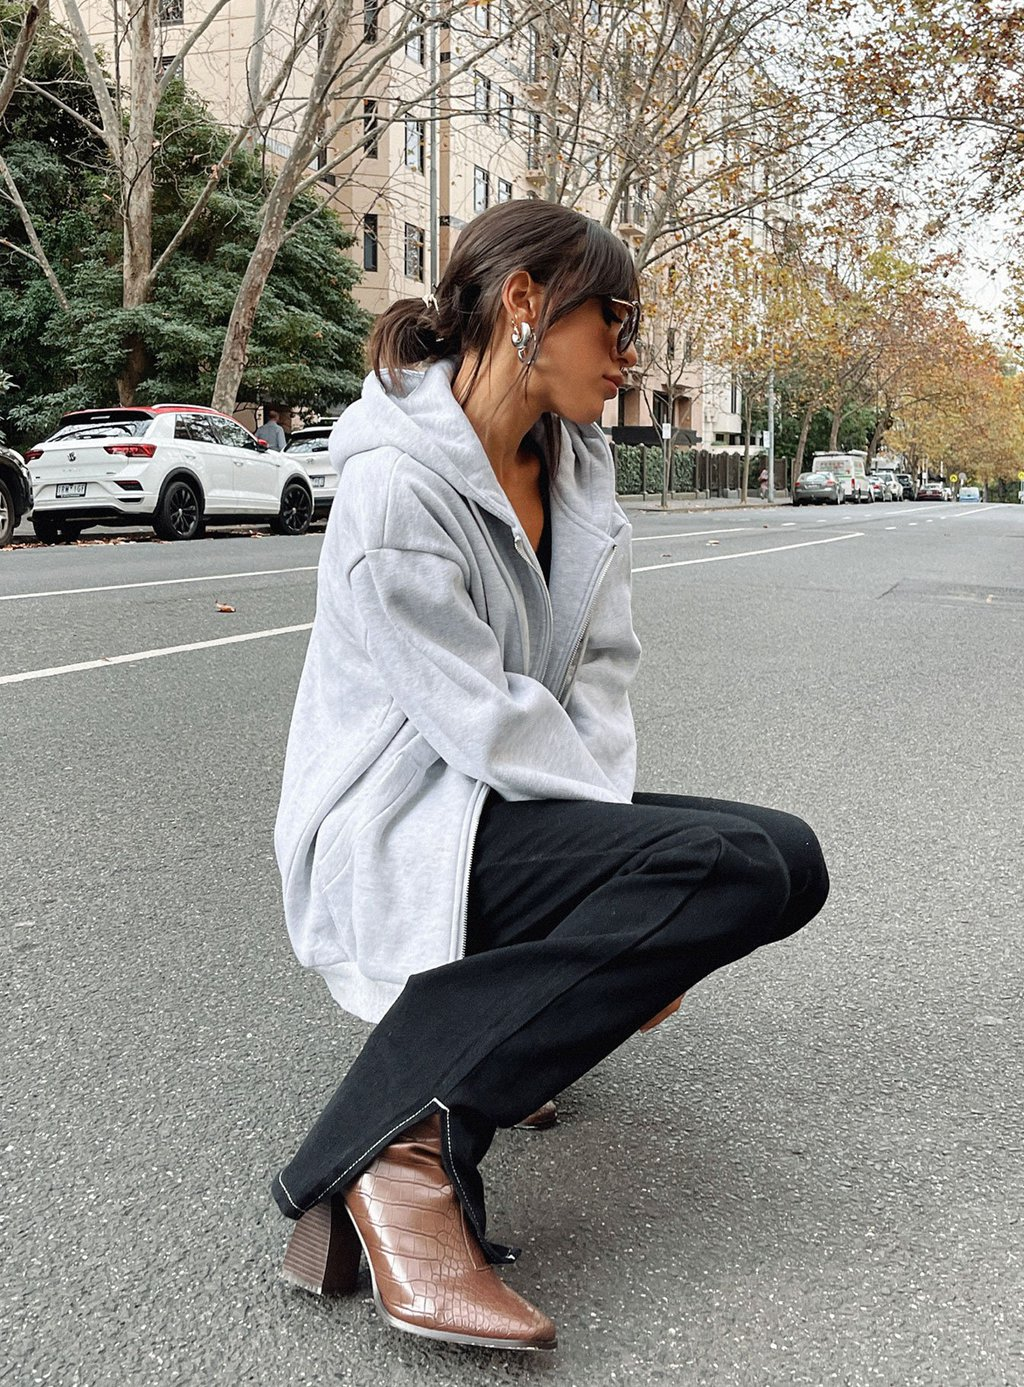 Photo from Princess Polly of a woman wearing fall wardrobe essentials including brown leather boots, flared pants, and a zip sweatshirt